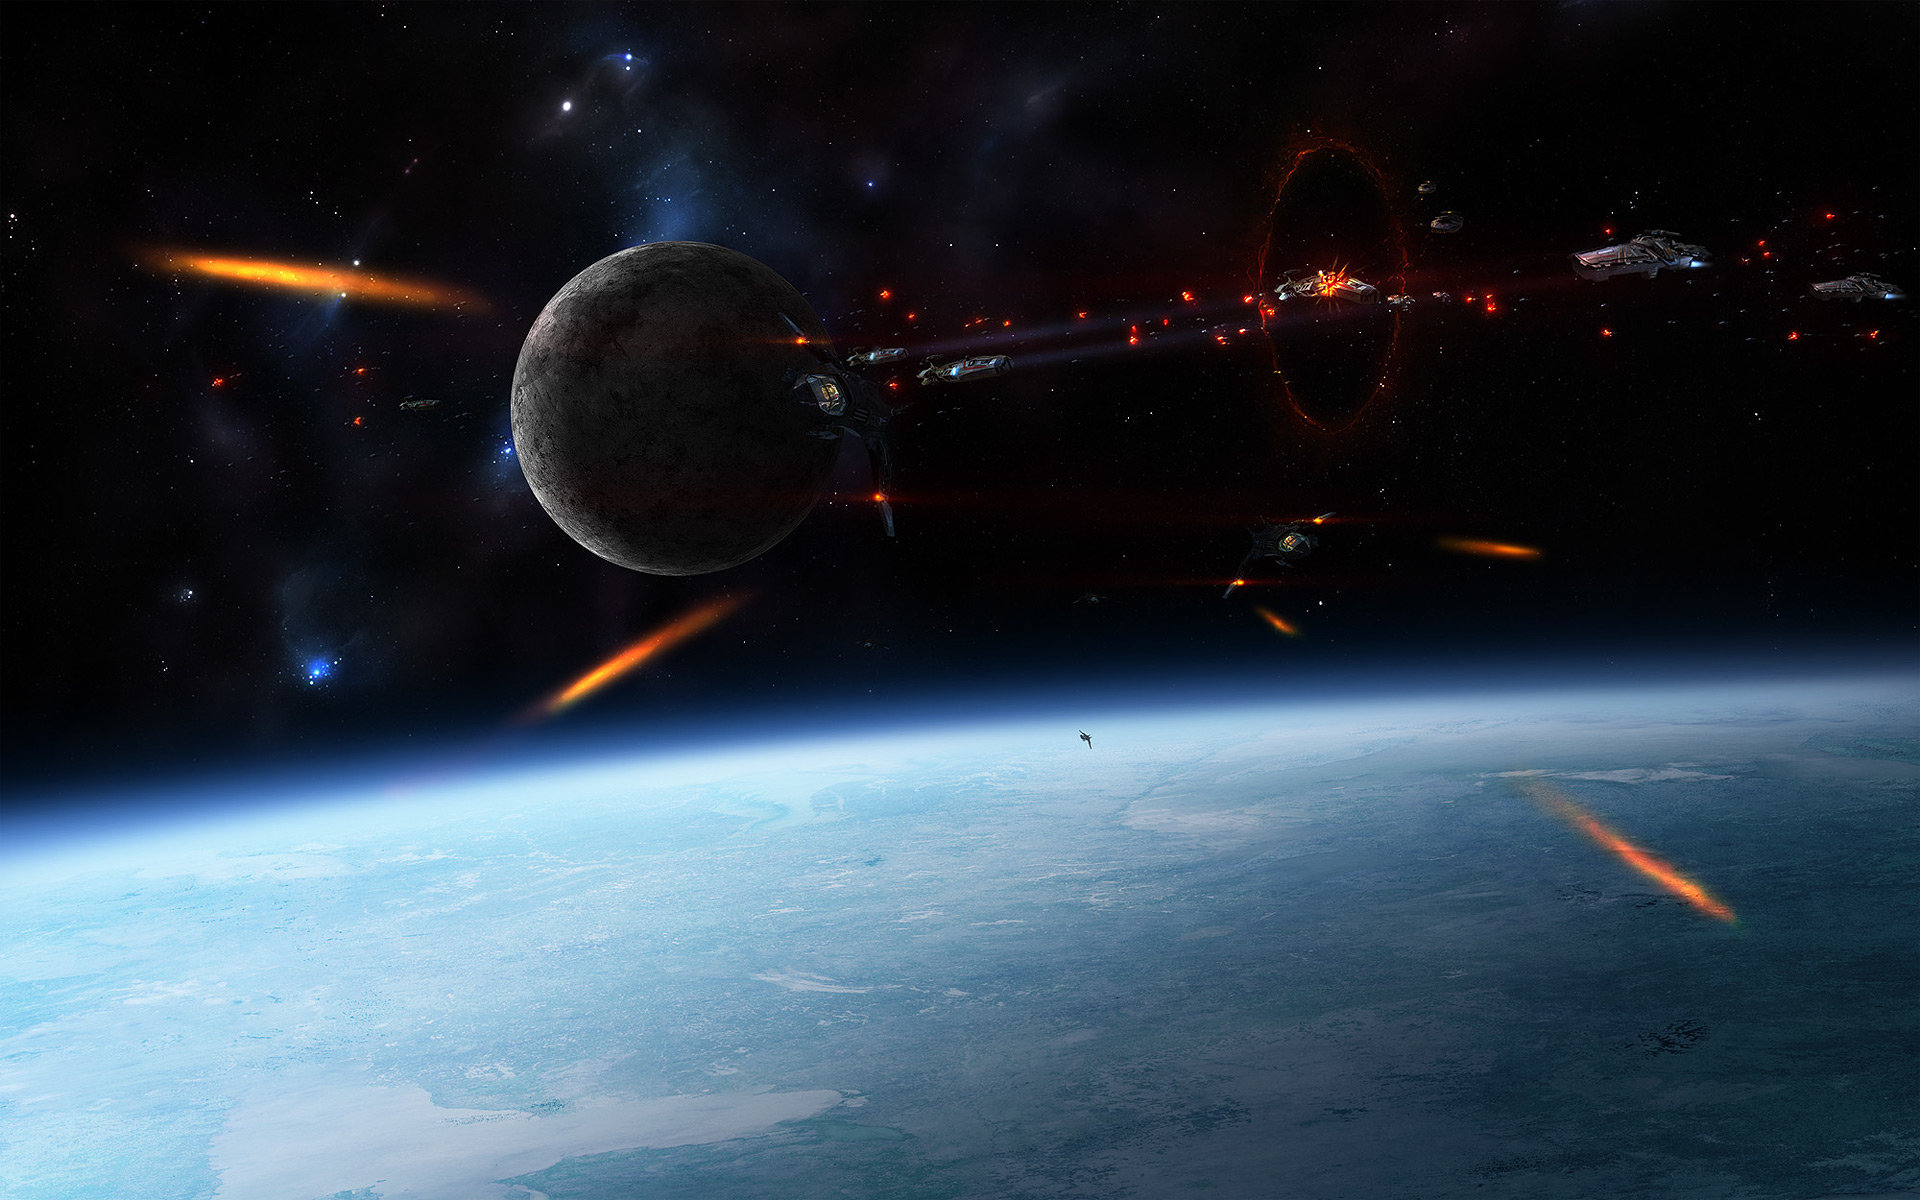 Best Epic Space Battle Wallpaper ID450459 For High Resolution Hd 1920x1200 Computer